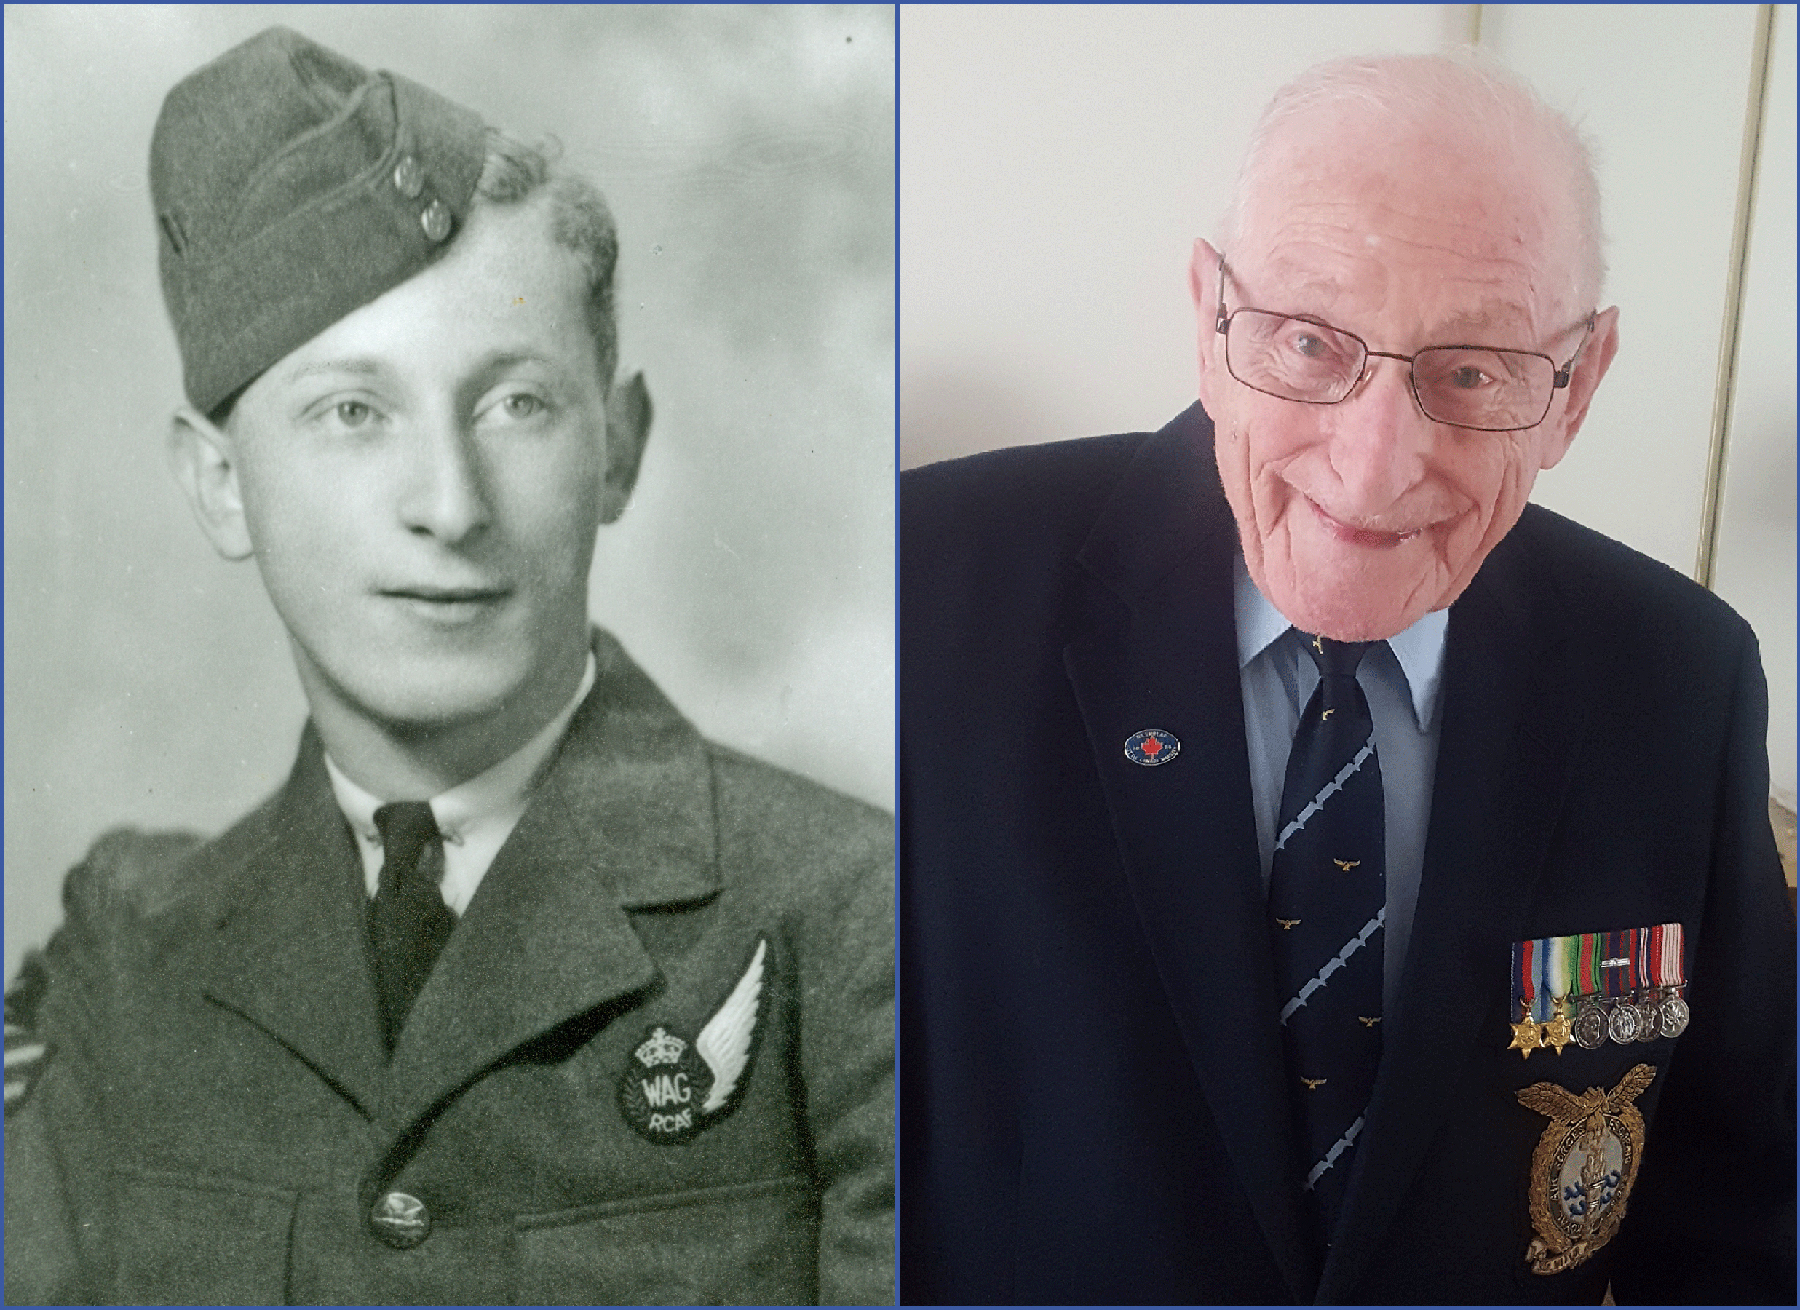 Flight Sergeant Harvey Firestone, then and now. He is the sole living survivor of the Norway crash. PHOTOS: Submitted